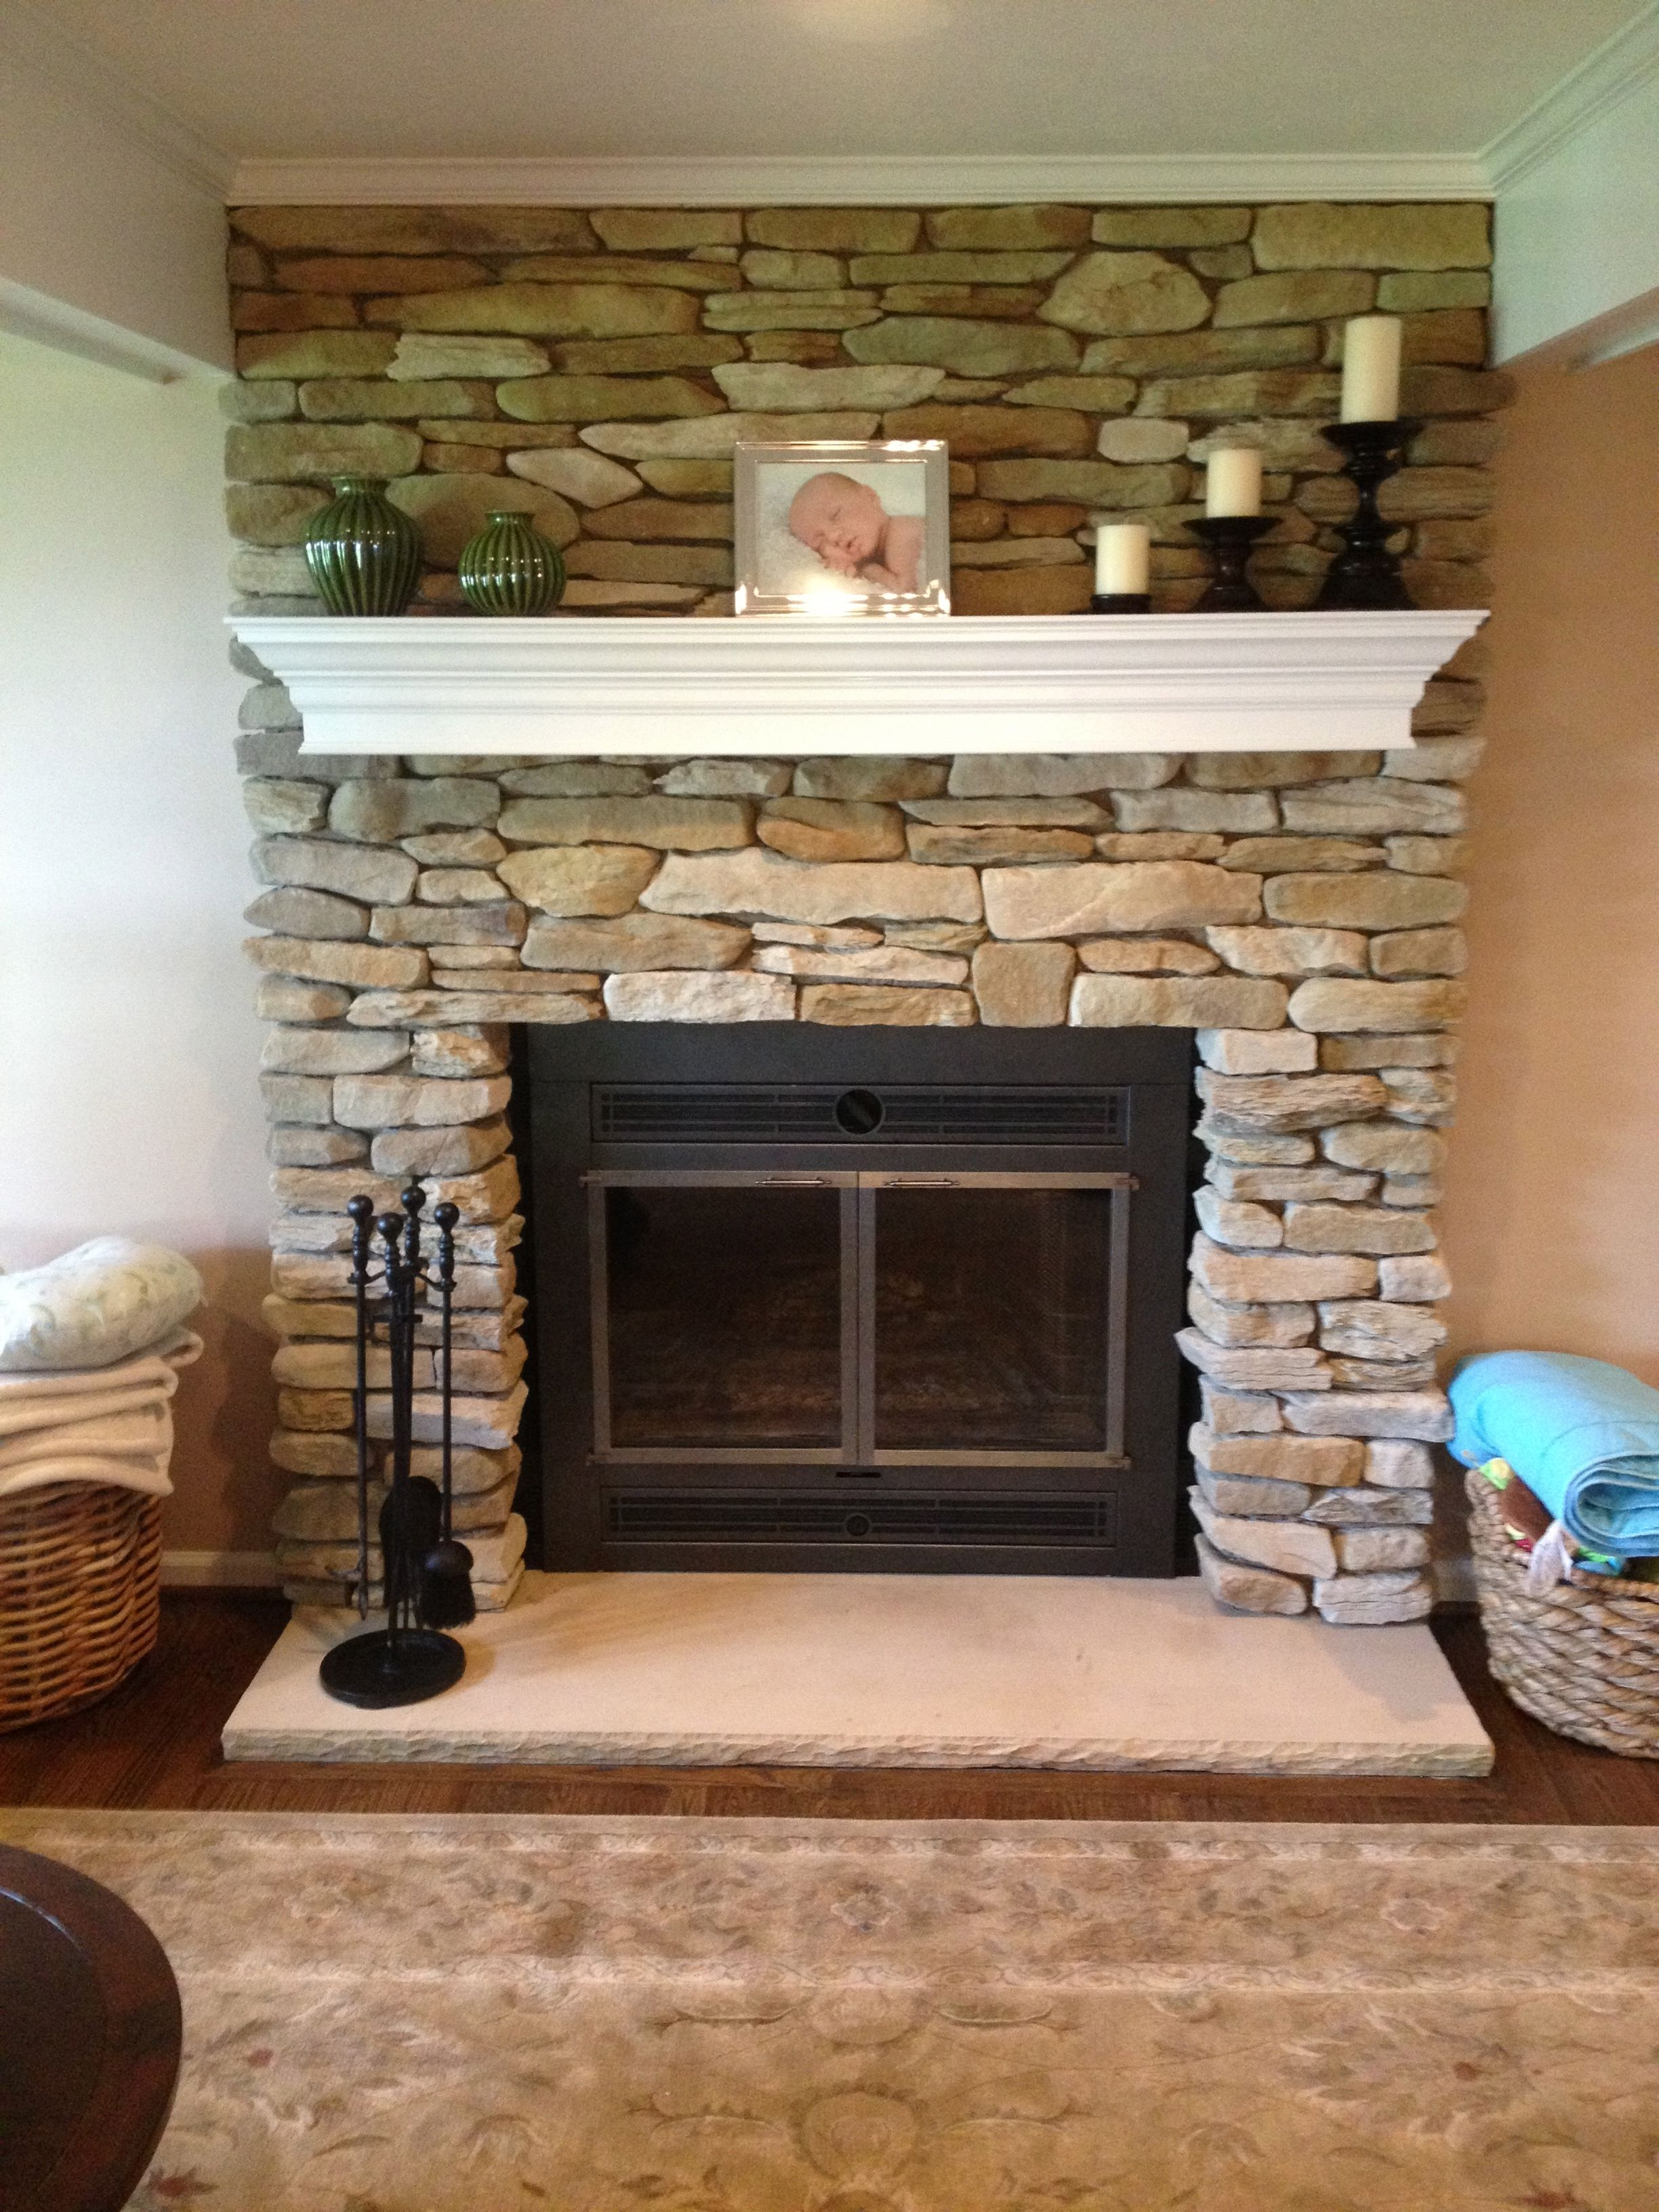 Diy Fireplace Refacing Stone Make An Easy Fireplace Refacing The New Refaced Fireplace With New Fireplace Doors And